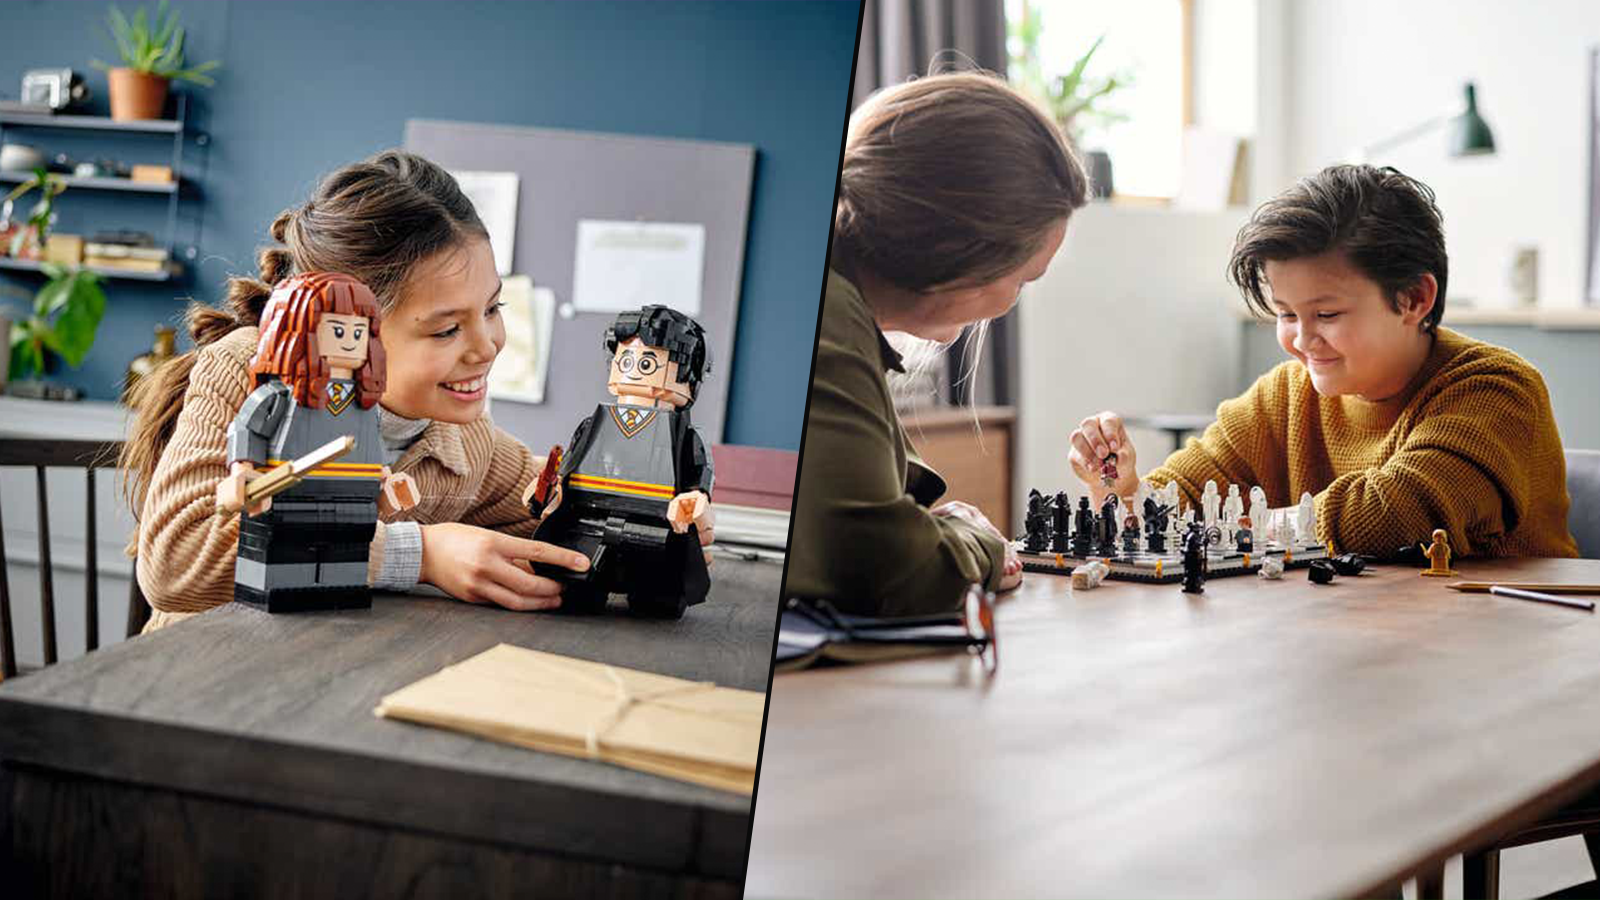 Two additional LEGO Harry Potter sets